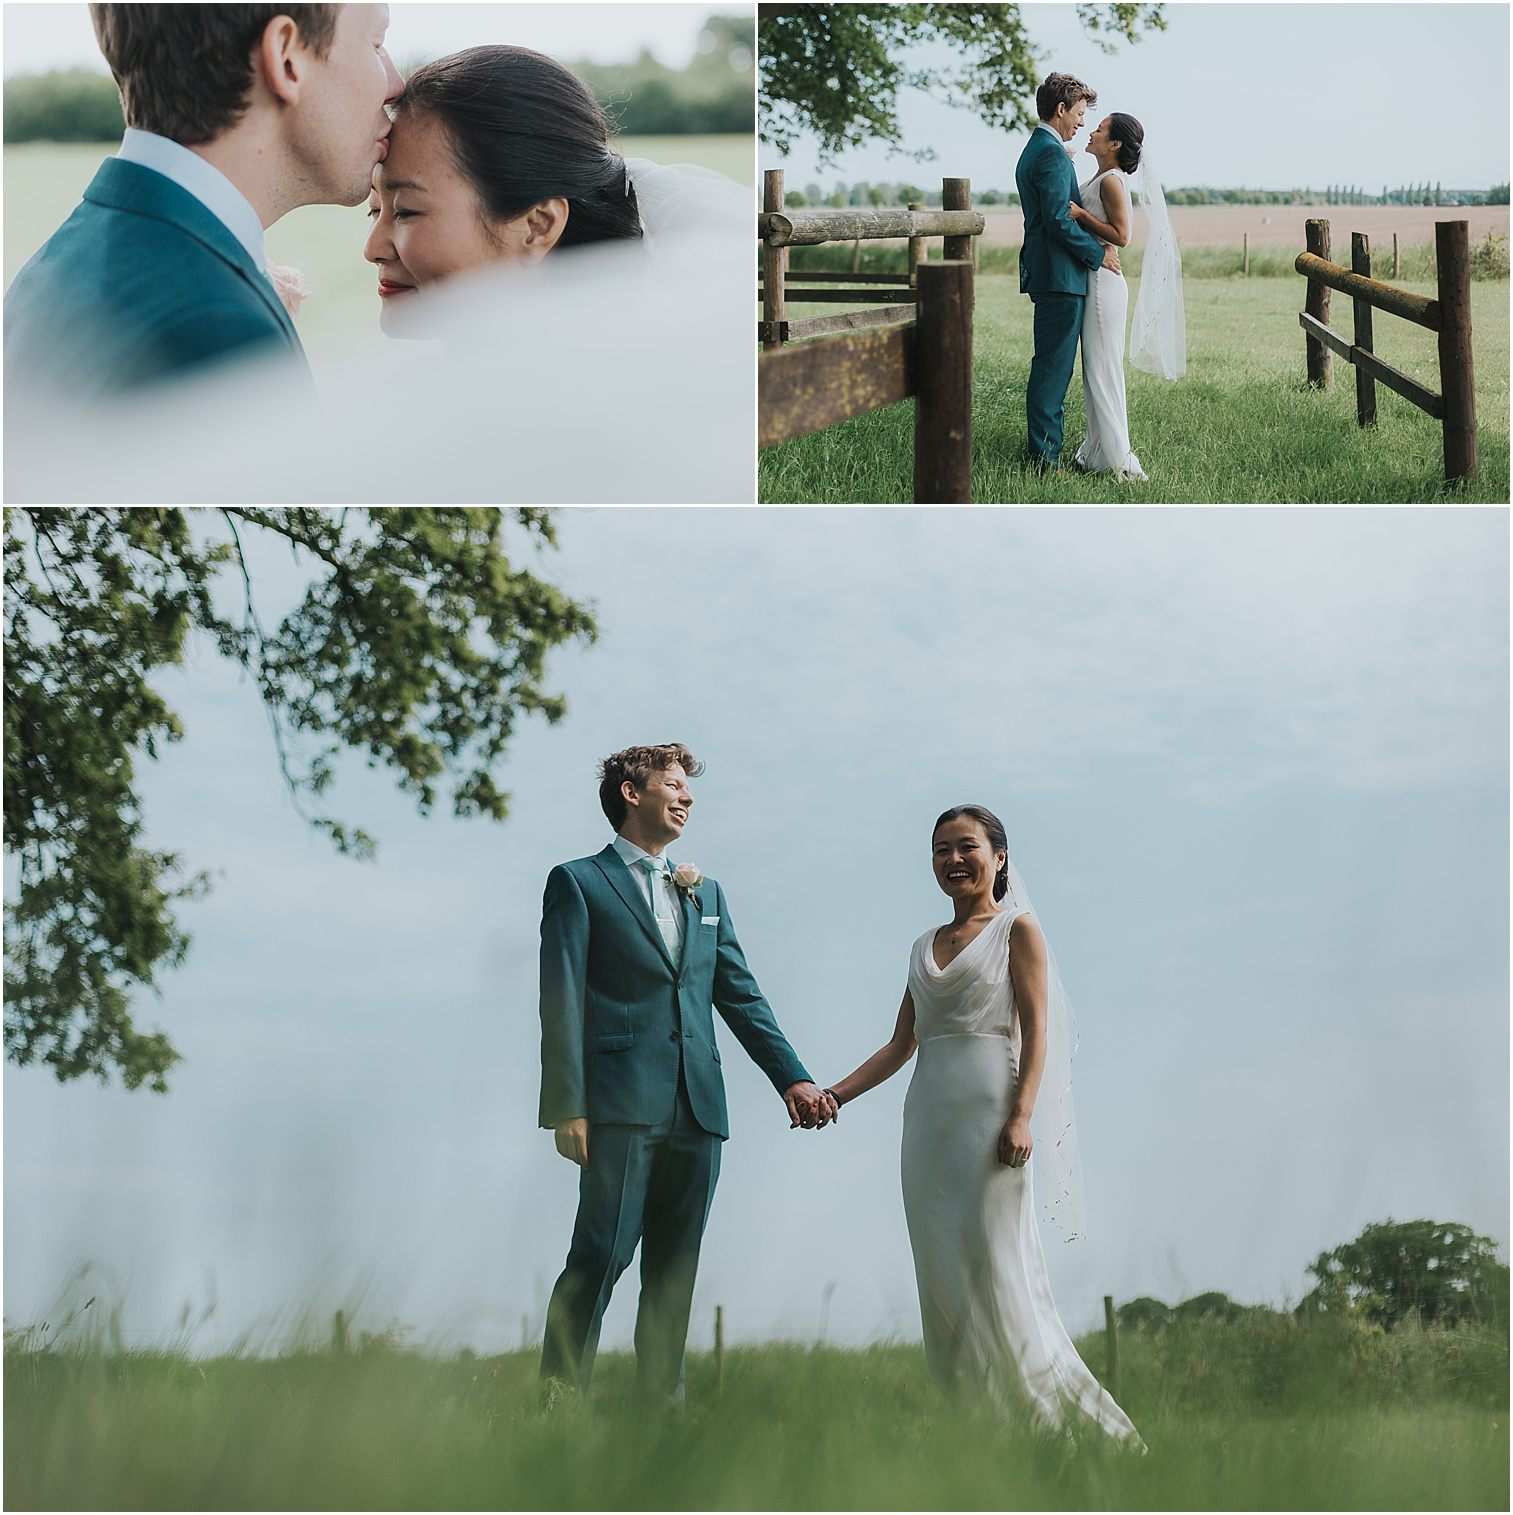 Three images of a bride and groom during couple portraits on a wedding day at Escrick Park